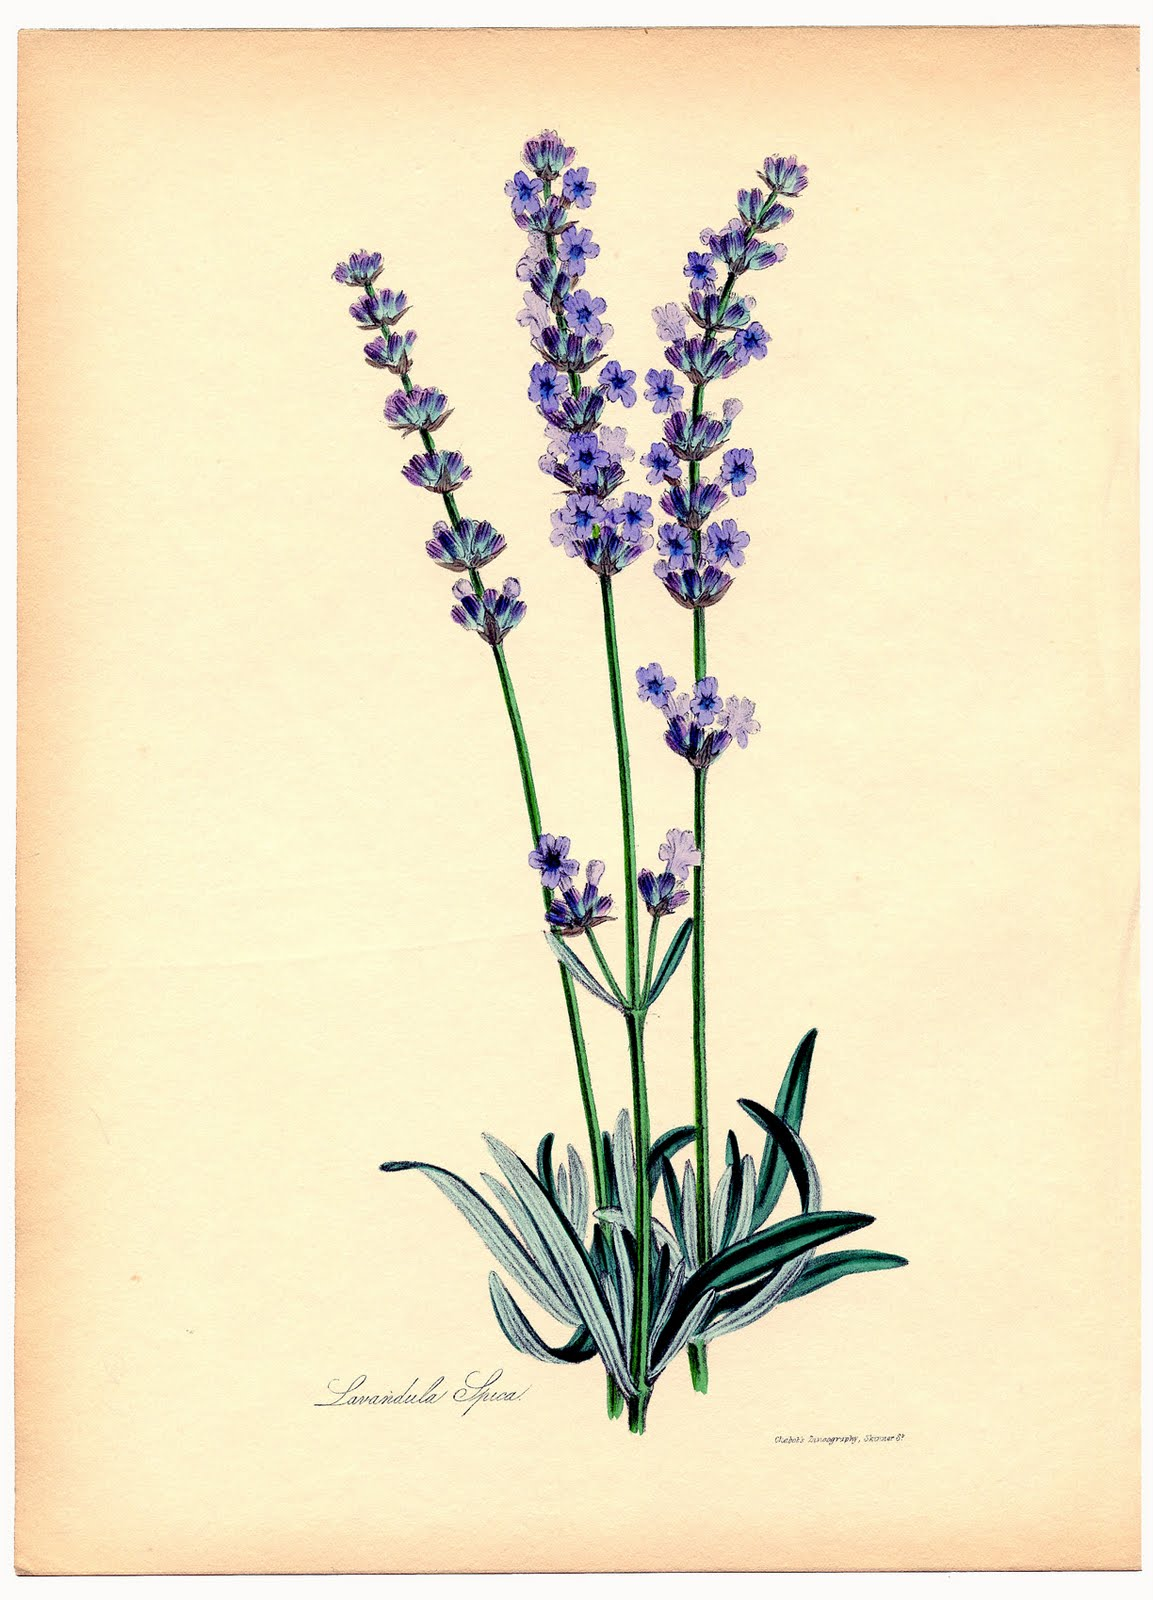 1000+ images about Lavender draw, paint on Pinterest.